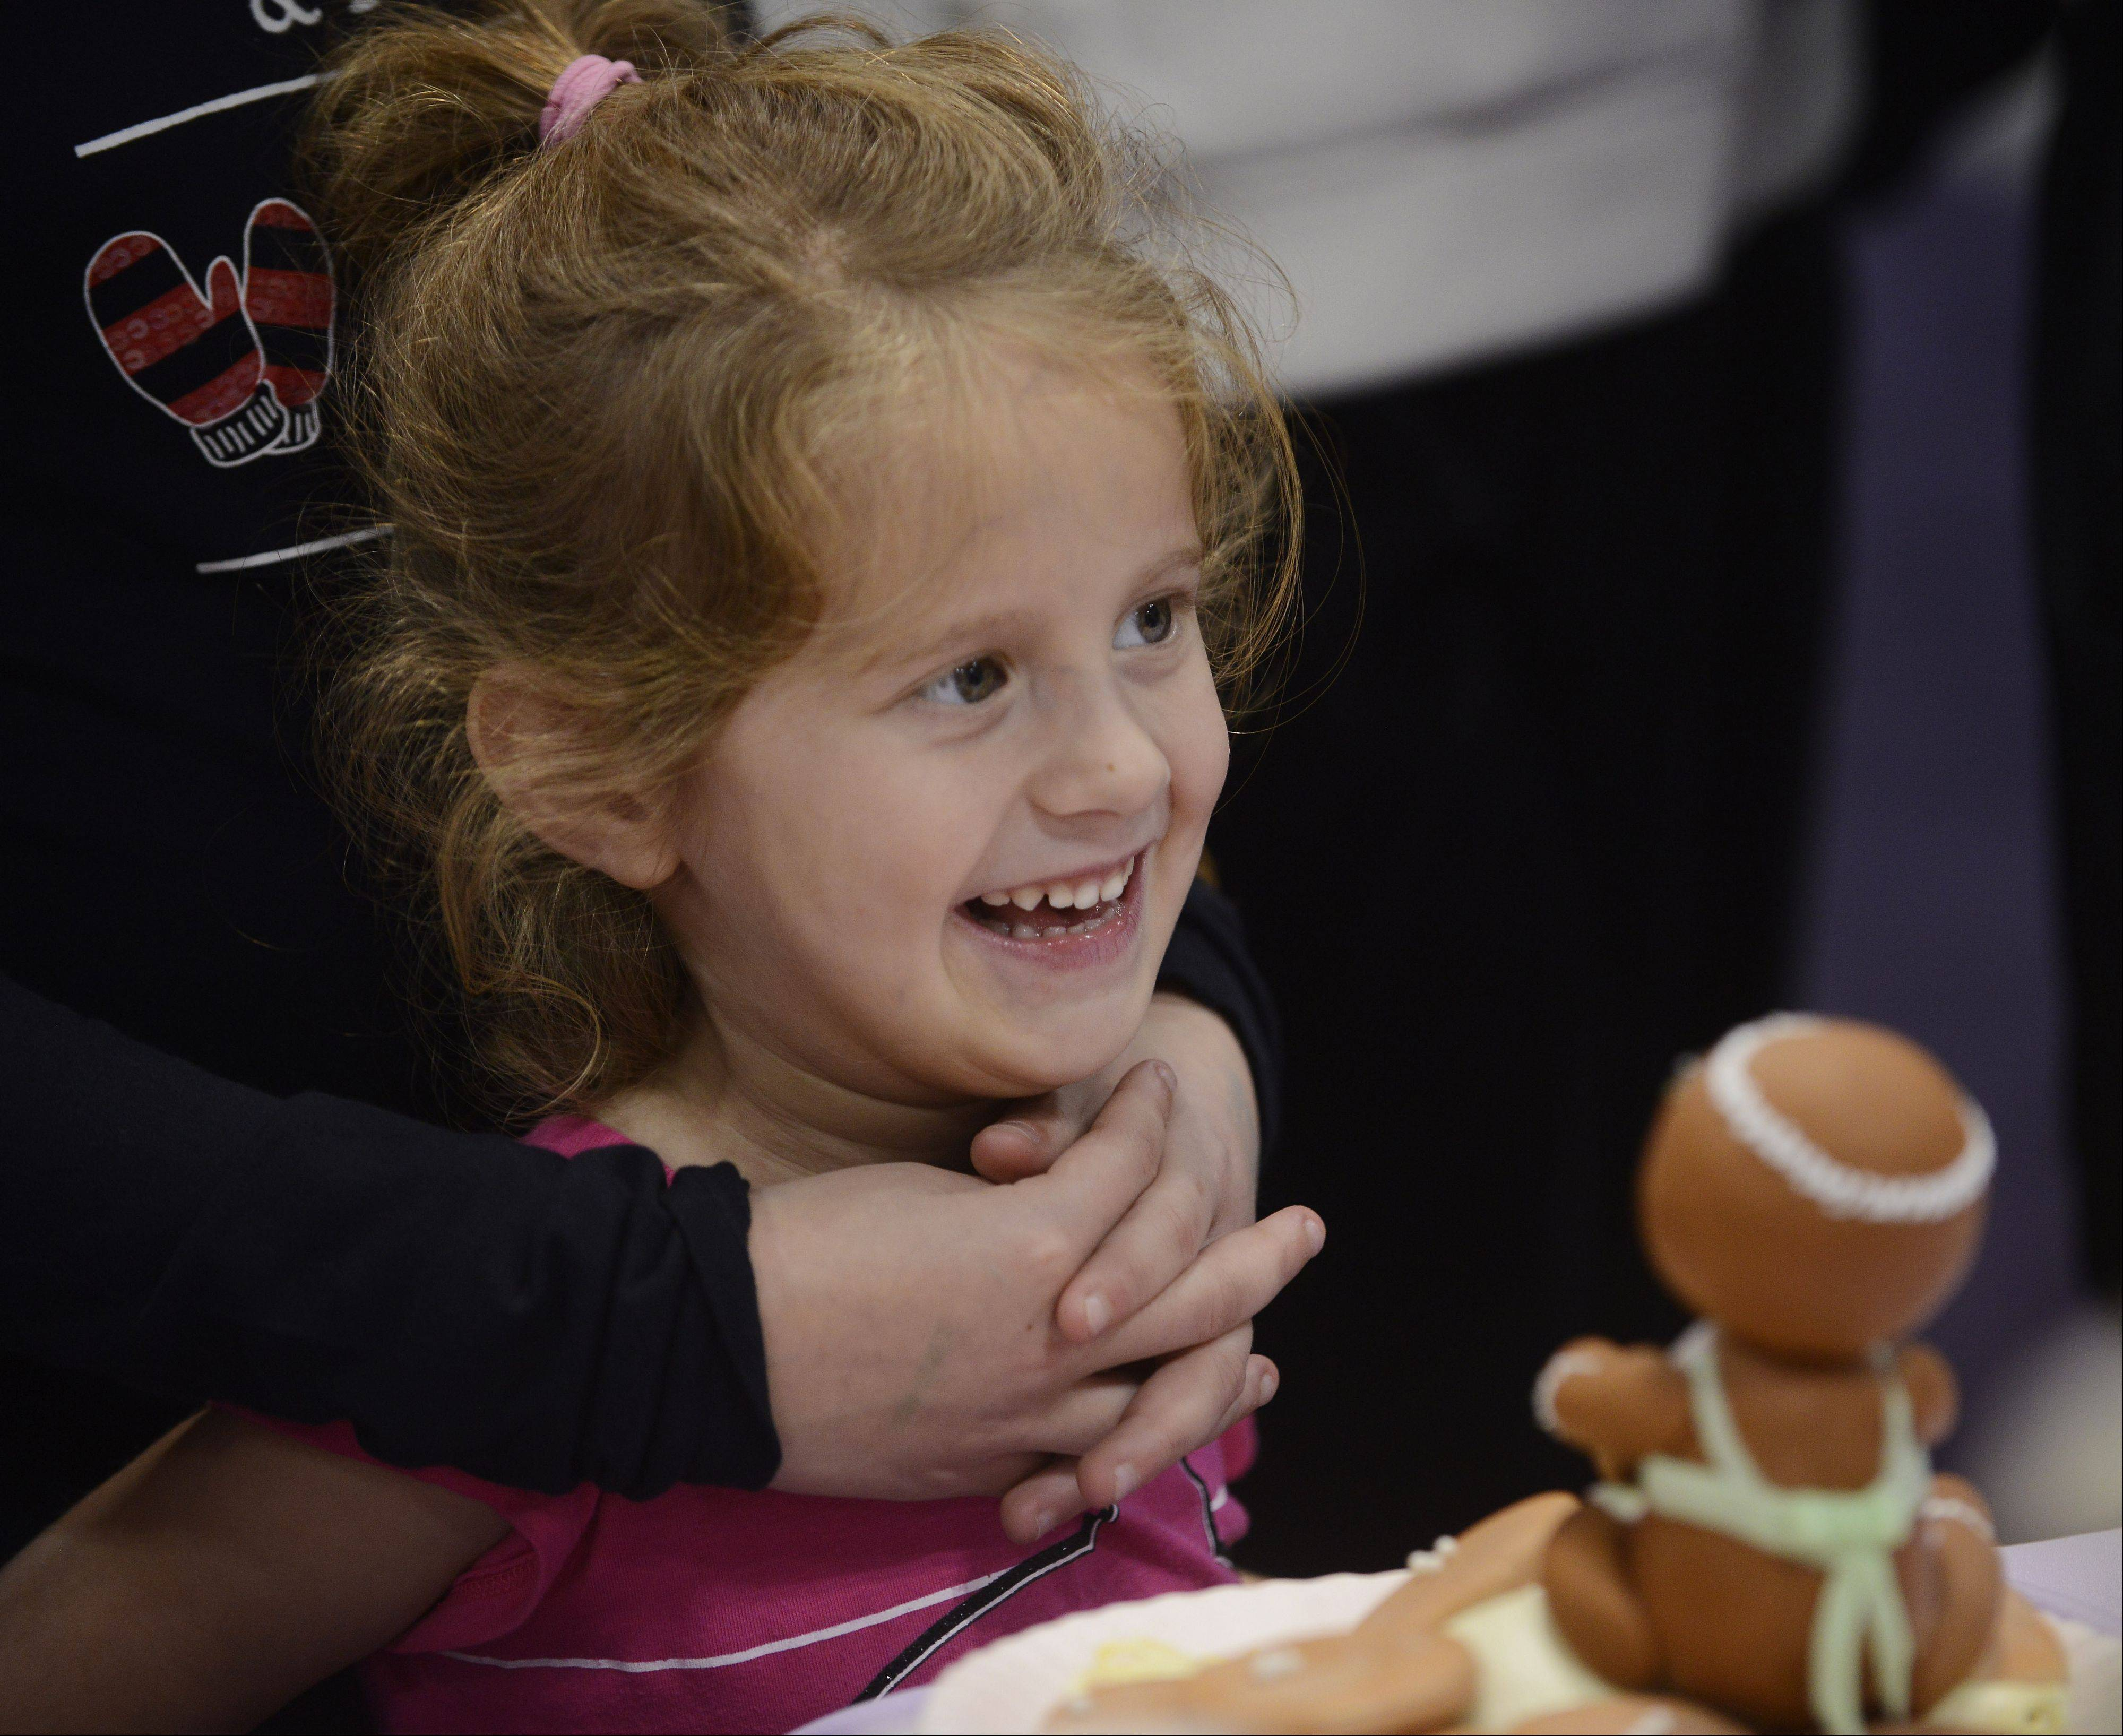 Riley Penar, 4, of Elgin smiles while watching a cake-decorating demonstration by the Wilton School of cake decorating and confectionery art Saturday during the America's Baking and Sweets Show at the Renaissance Schaumburg Convention Center.